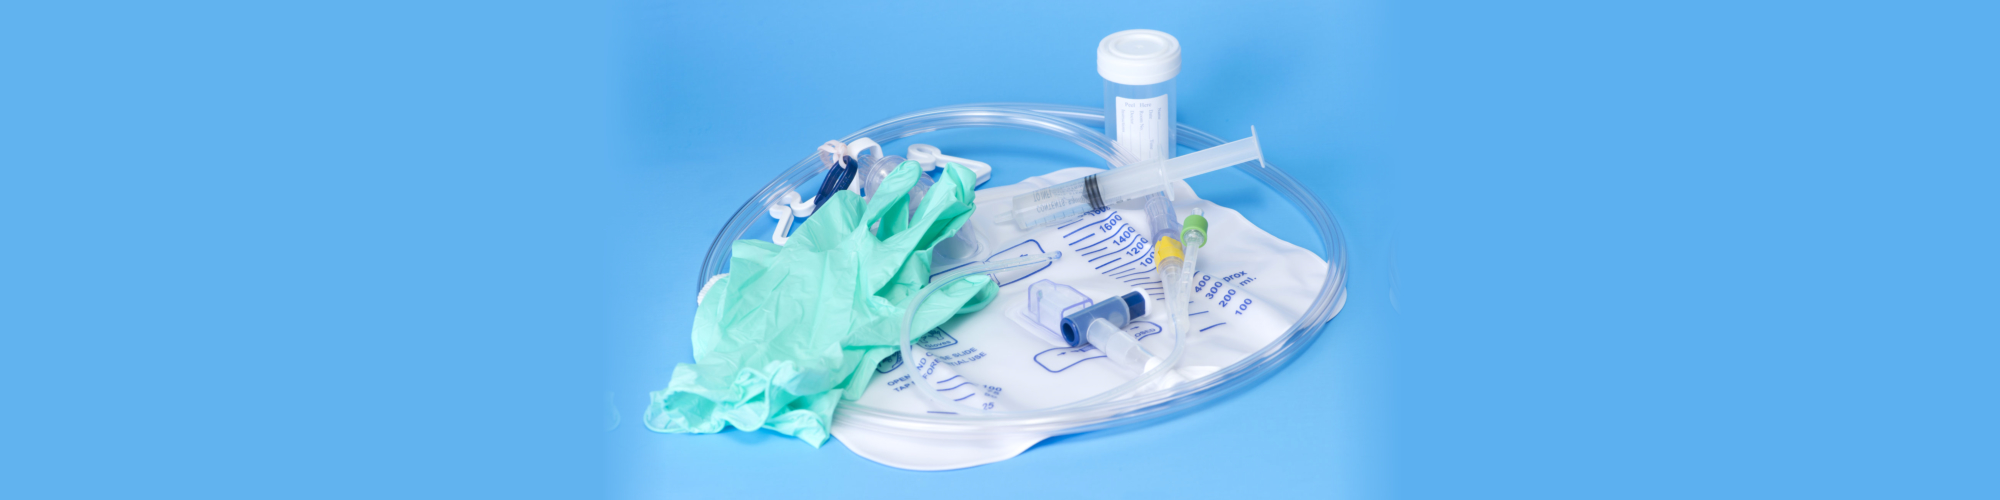 Foley catheter and drainage bag with sterile gloves and specimen container on blue background